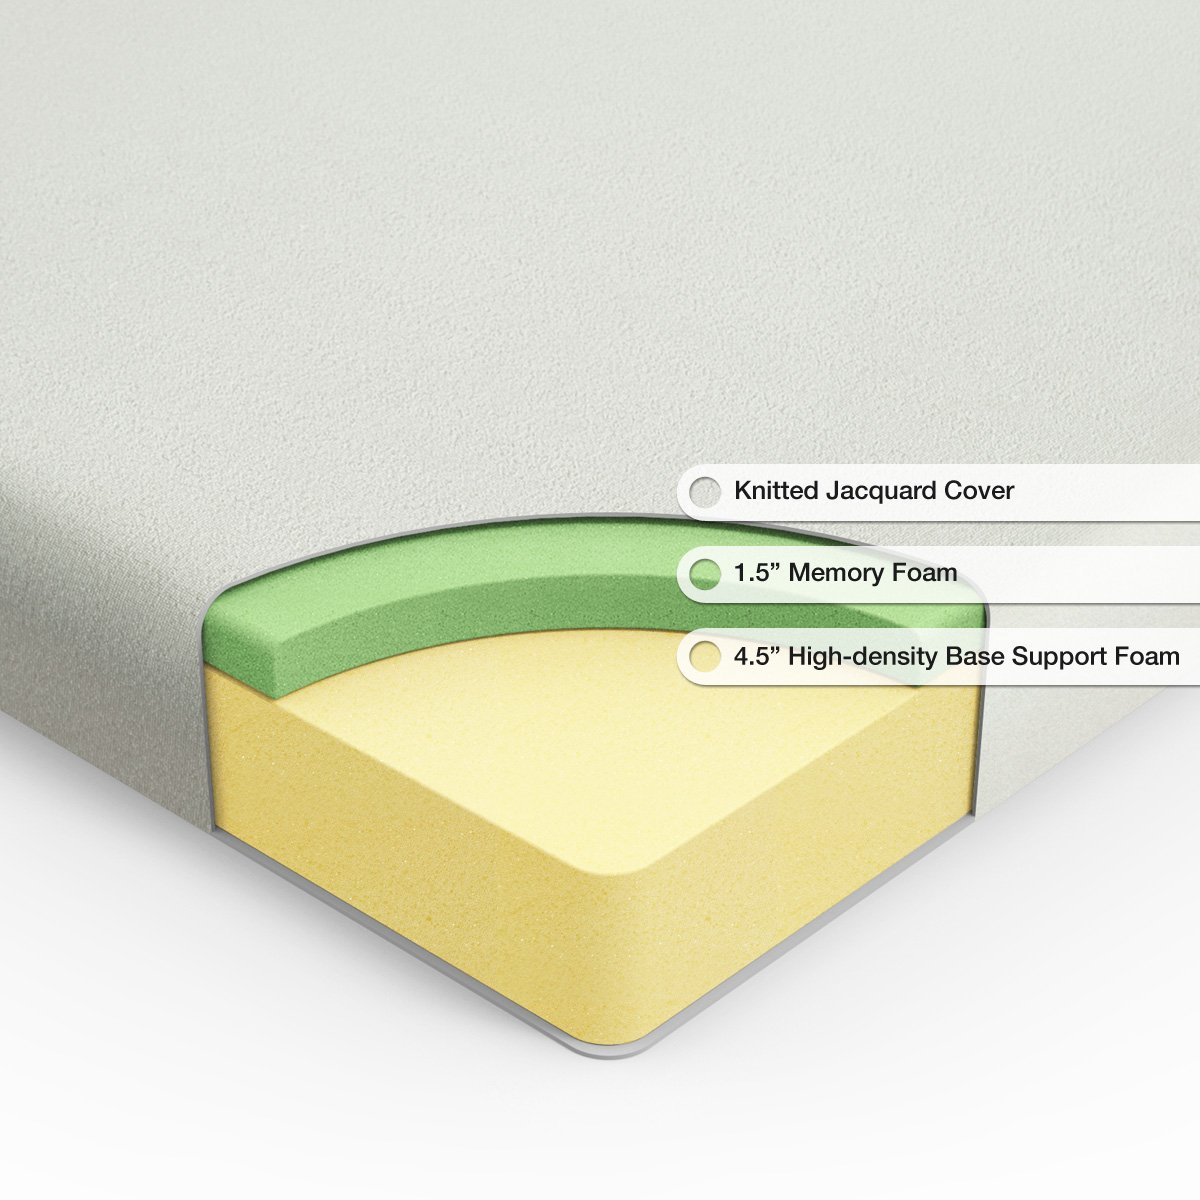 Amazon.com: Zinus Sleep Master Ultima Comfort Memory Foam 6 Inch Mattress,  Full: Kitchen & Dining